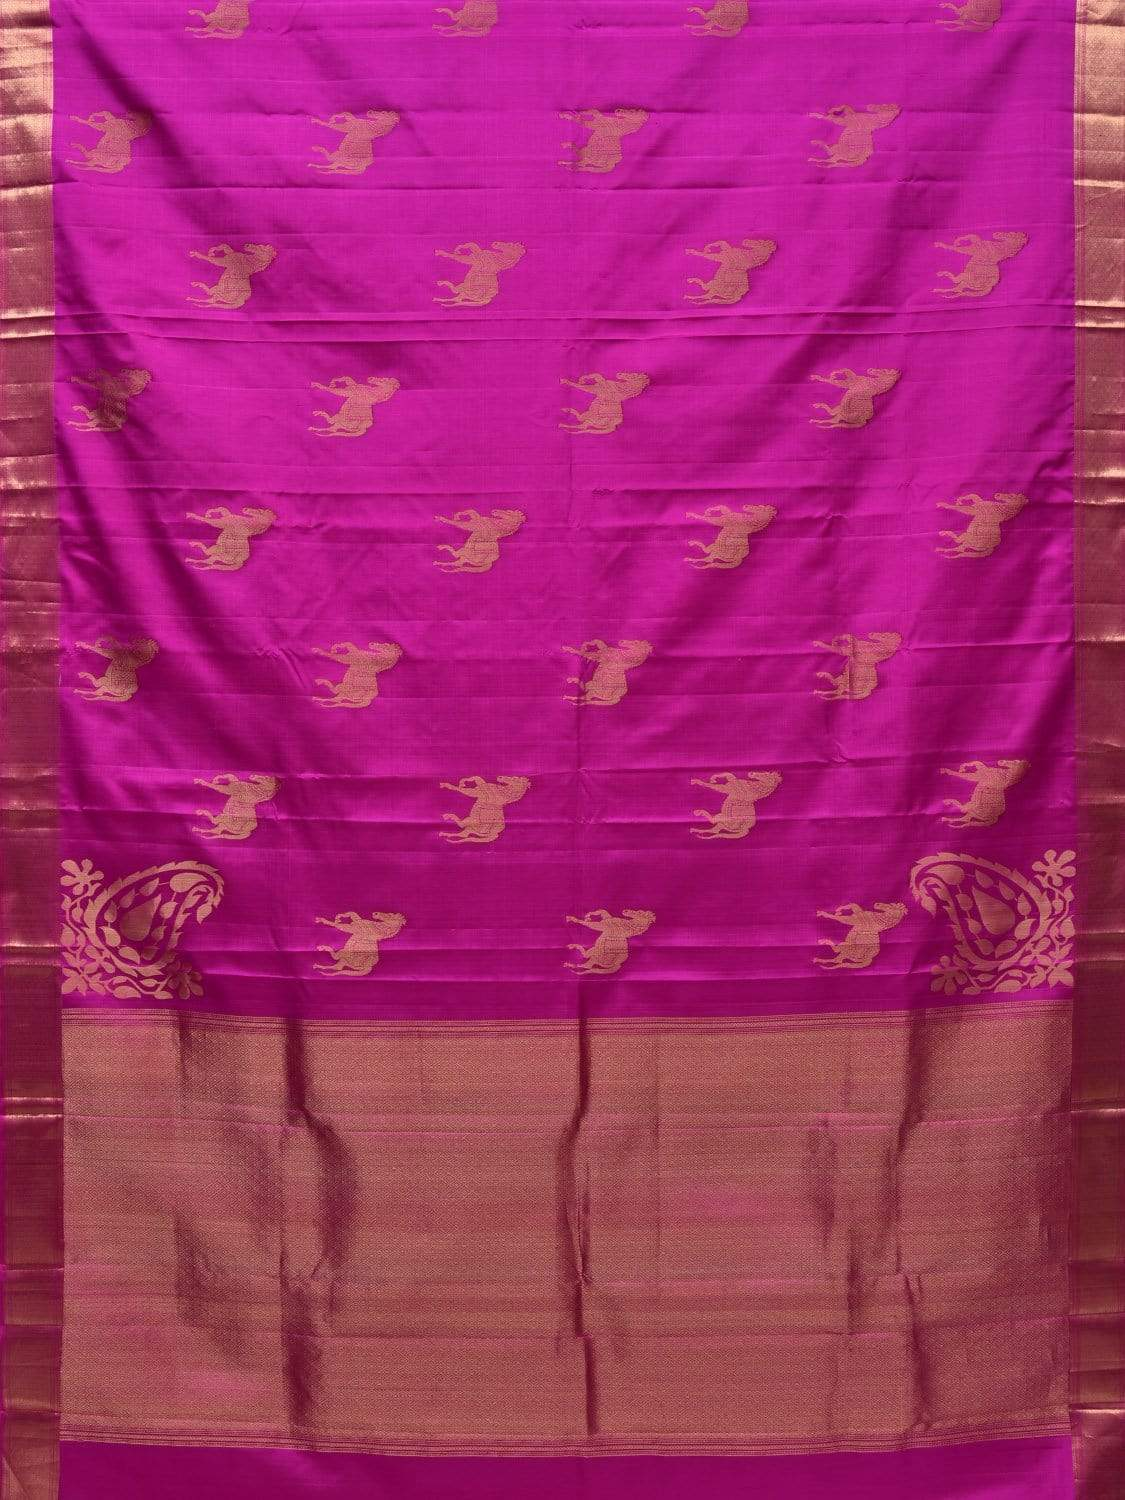 Magenta Kanchipuram Silk Handloom Saree with Horse Buta and Corners Mango Design k0495